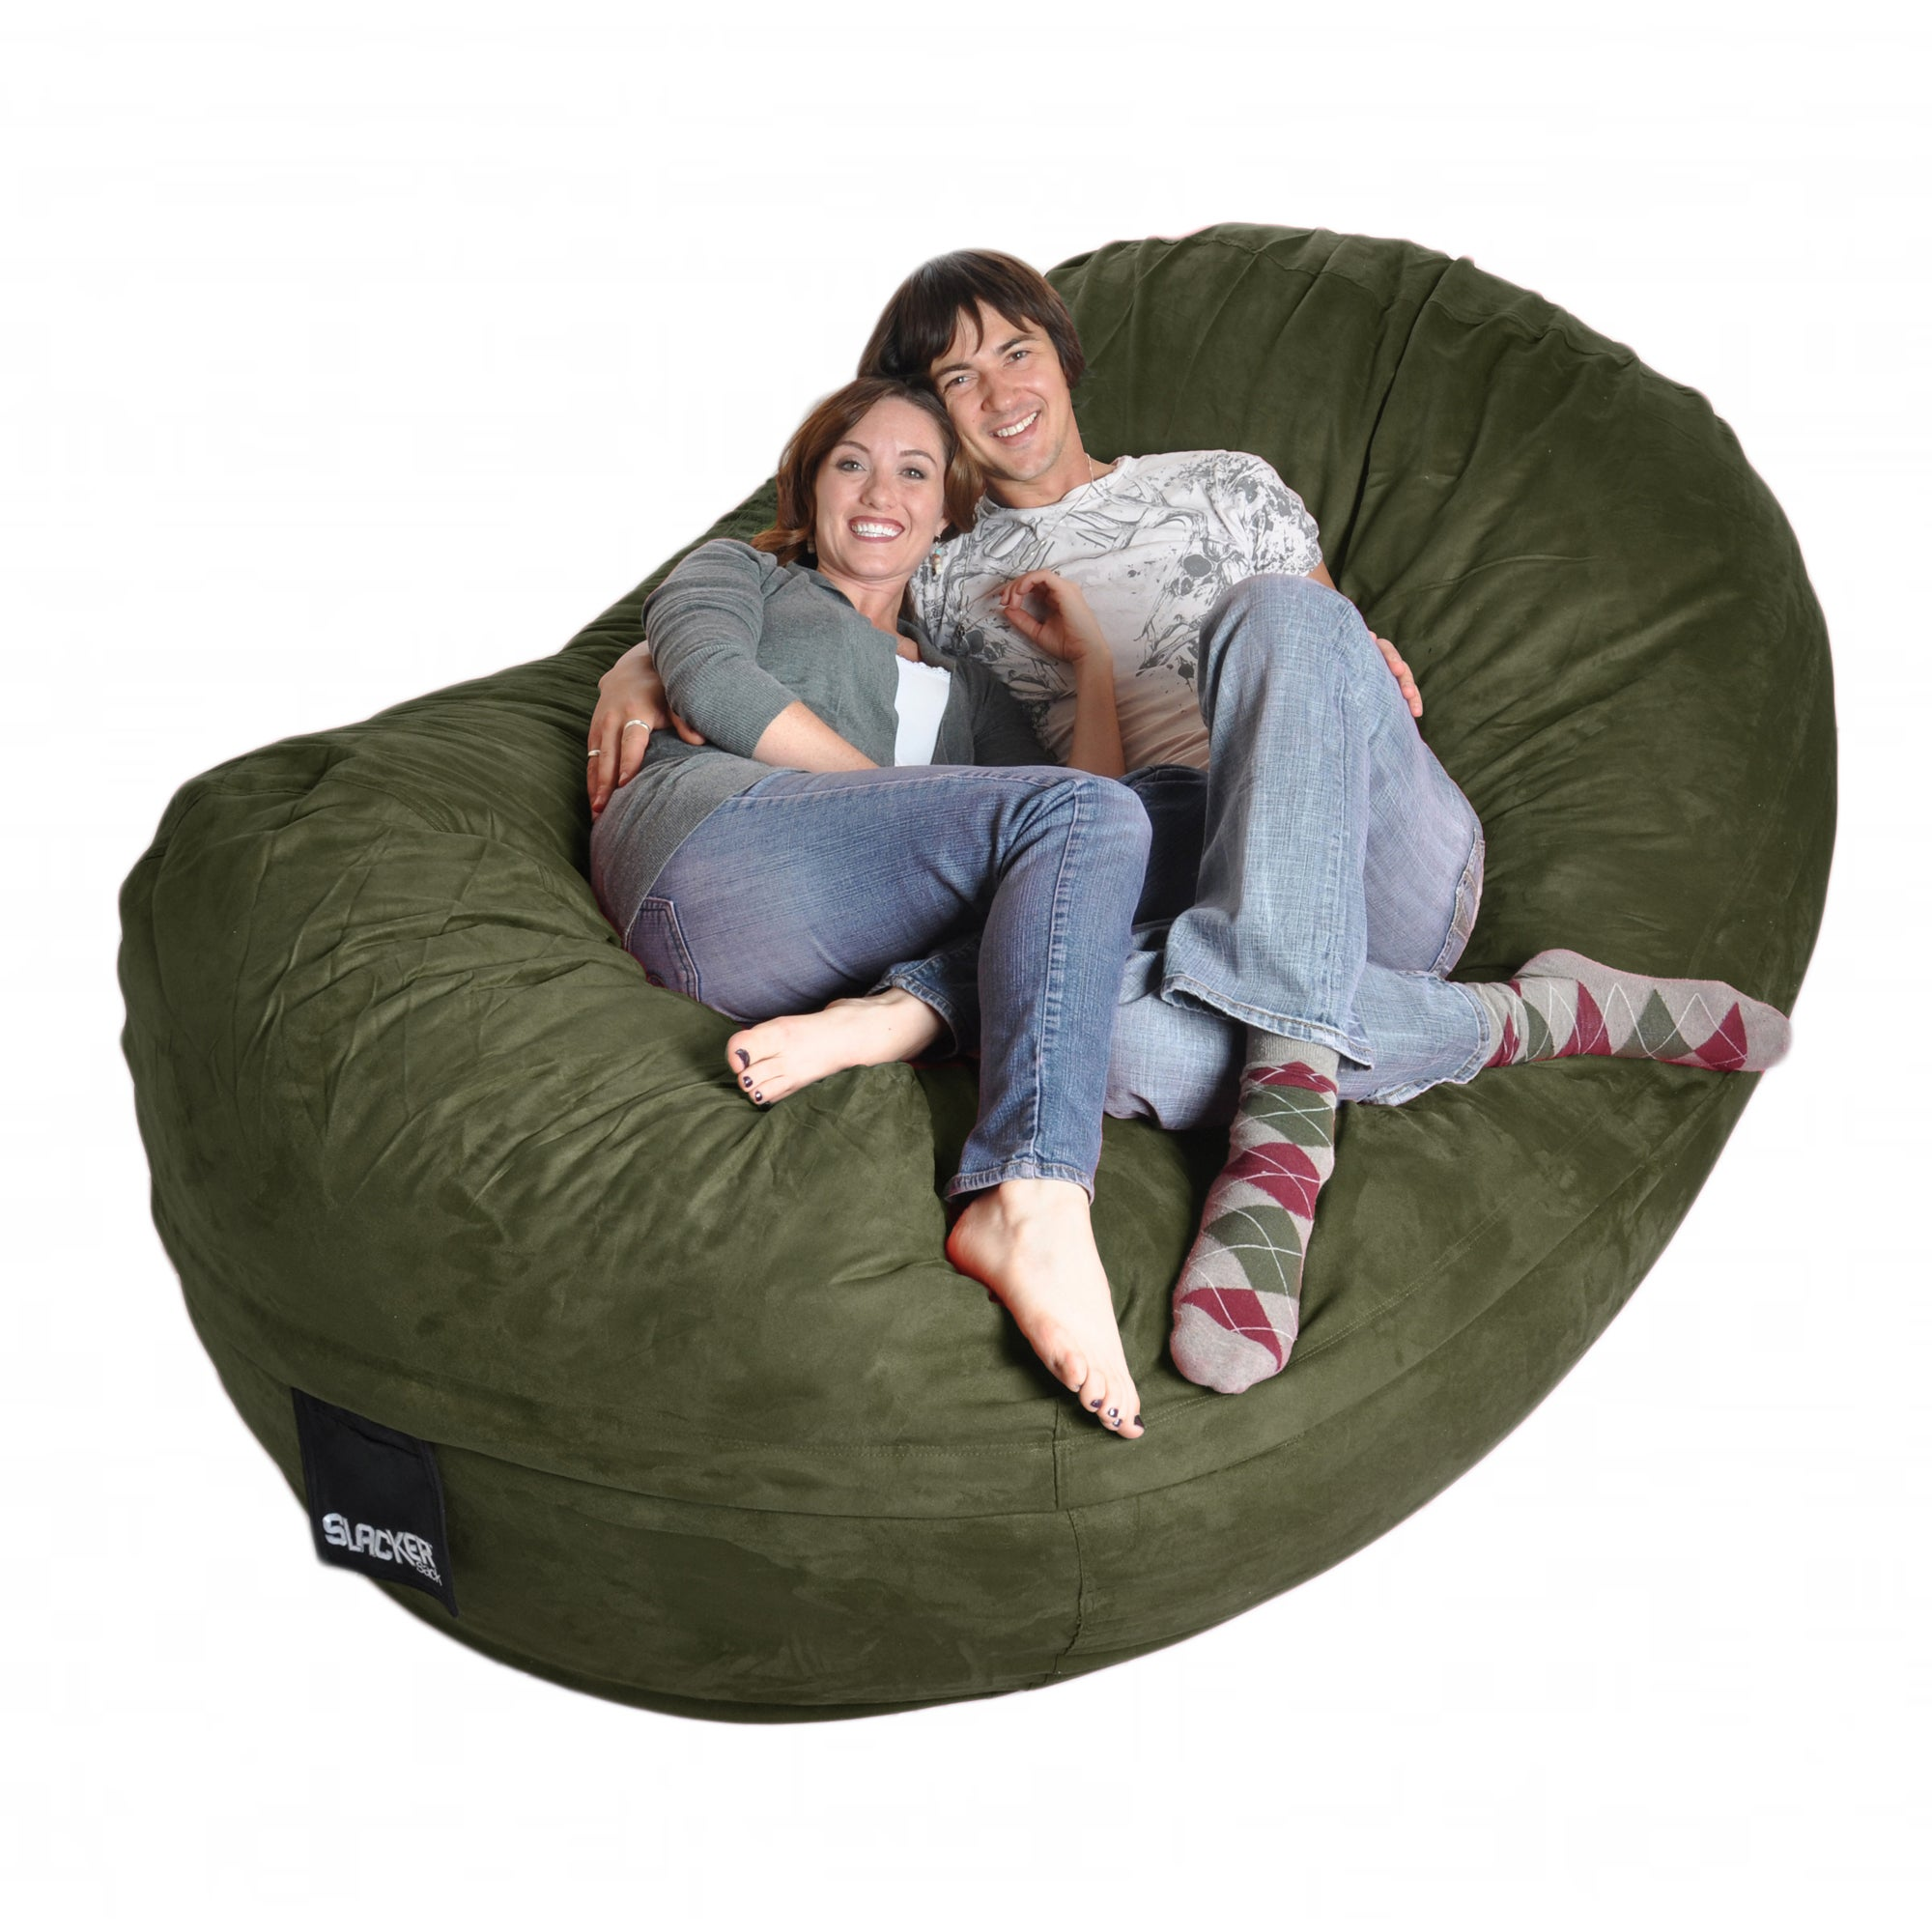 Eight-foot Olive Green Oval Microfiber/ Foam Bean Bag at Sears.com